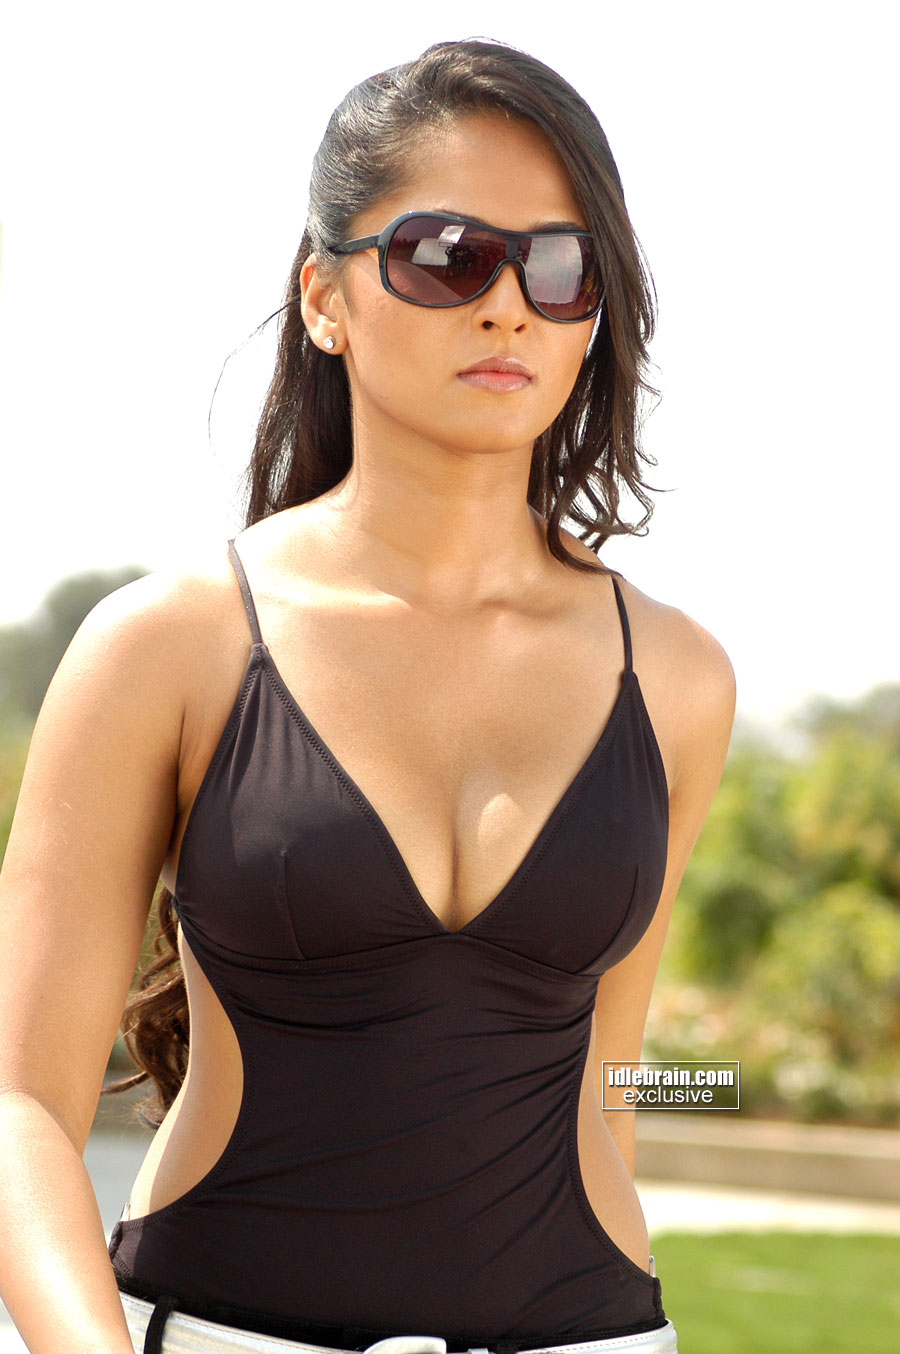 anushka%252Bhot%252Bvin%252Bstyile Tamil Actress Hot Unseen Photos, Tamil Actress Gallery, xxx State ...